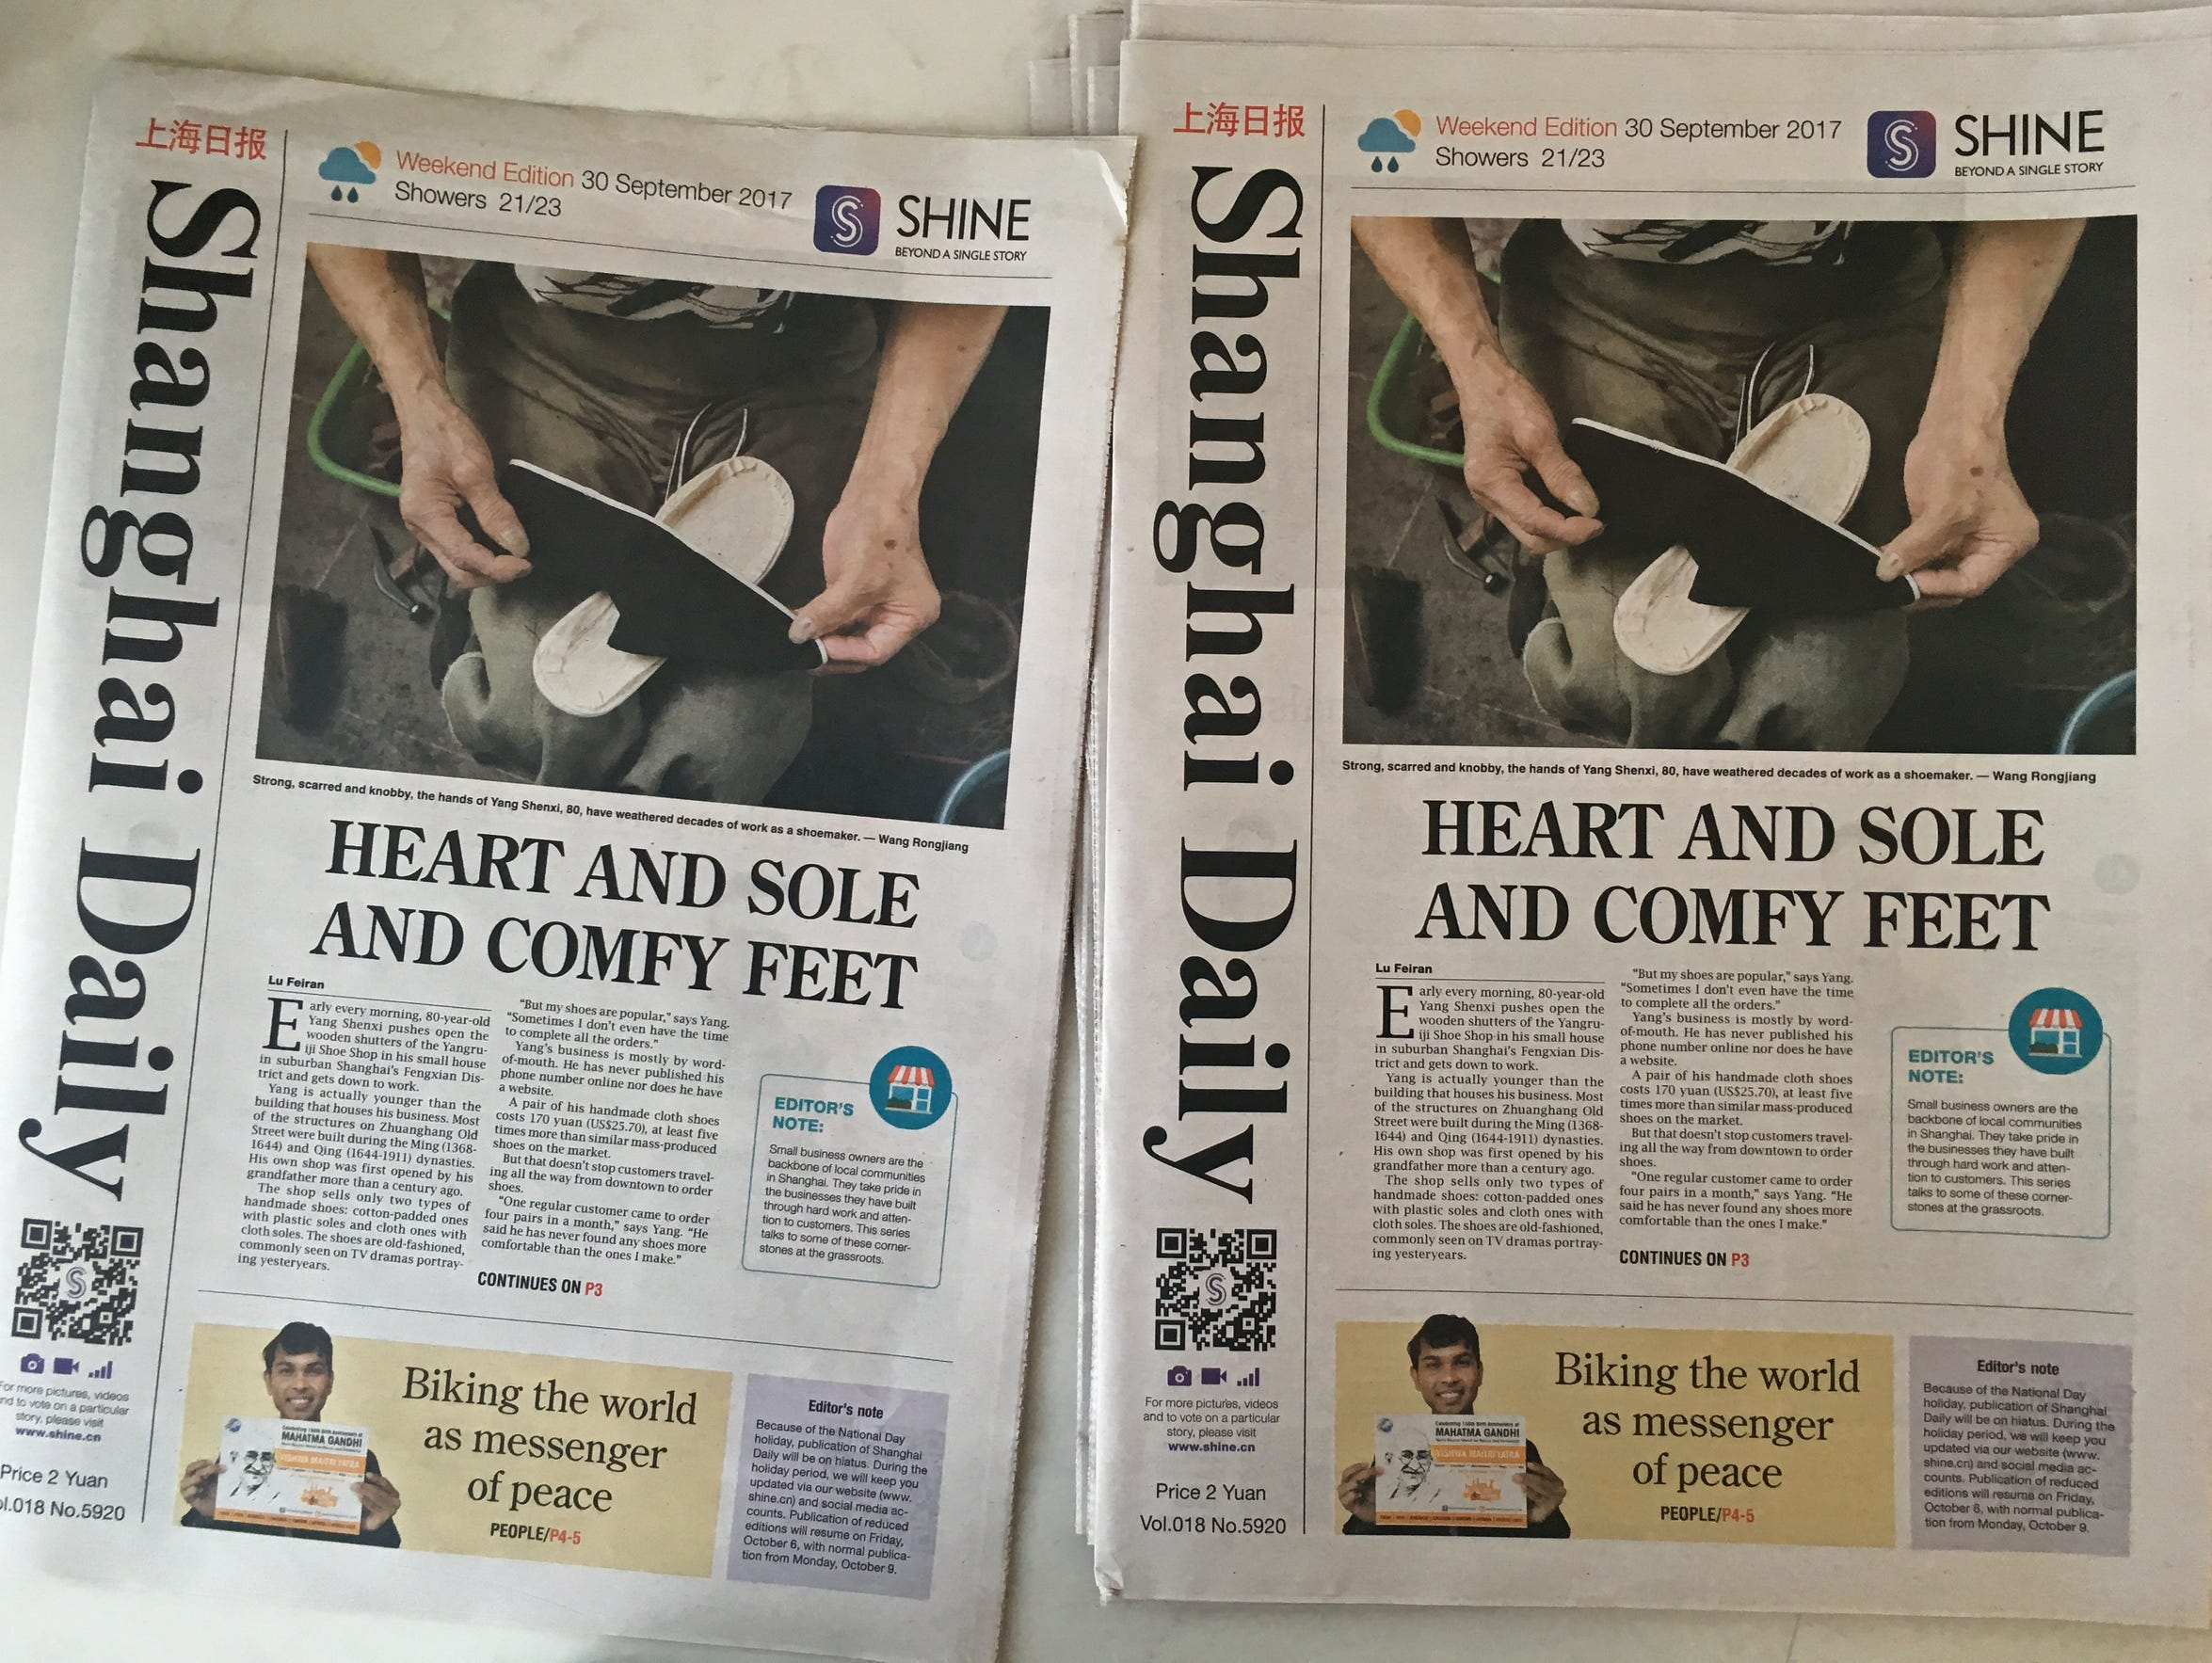 Copies of the Shanghai Daily set out on a table in